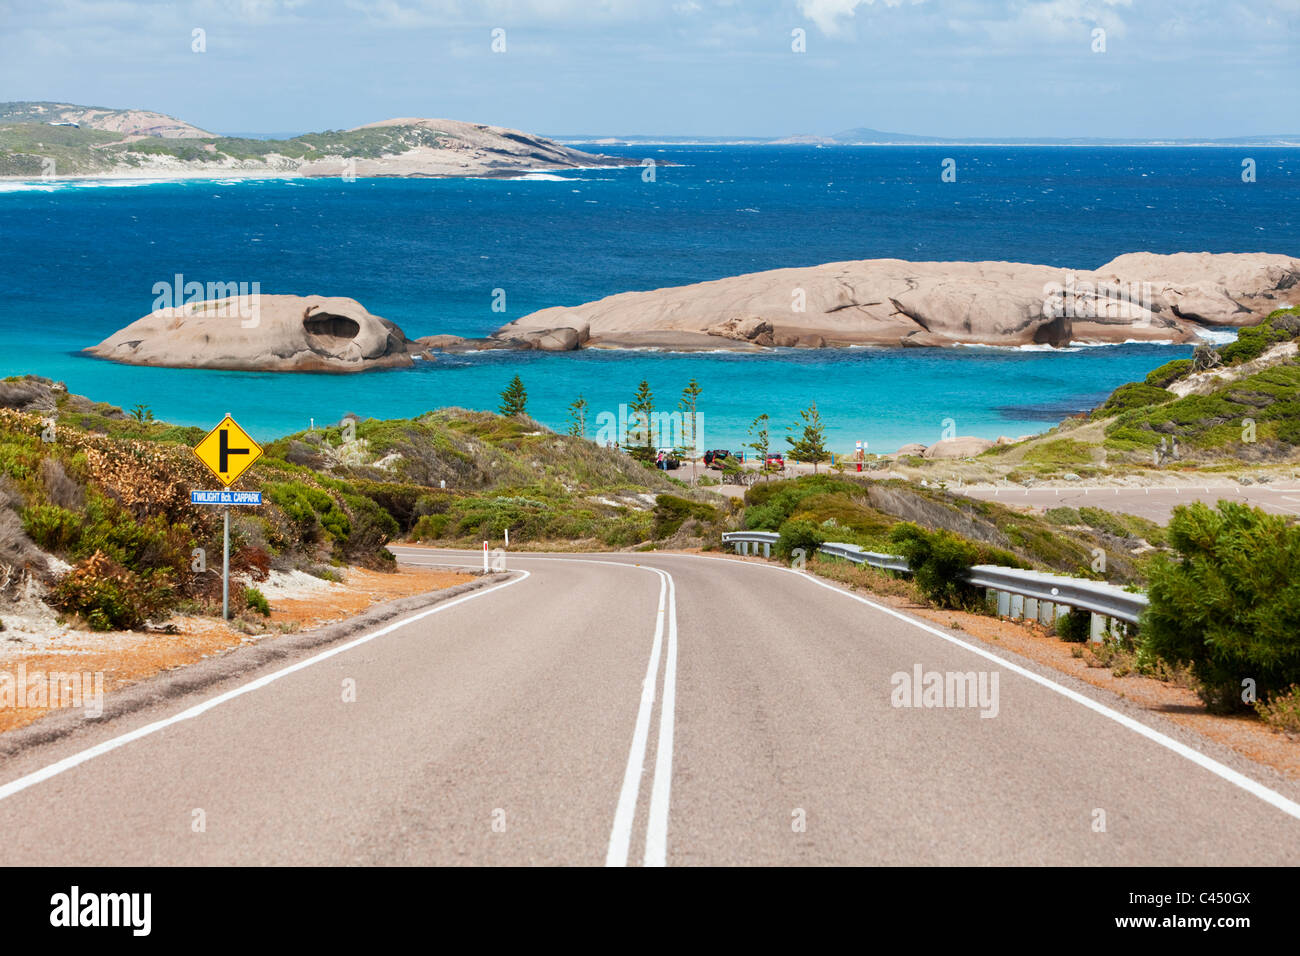 Road leading down to Twilight Cove. The road is part of the Great Ocean Drive - a 38 kilometre scenic drive along - Stock Image